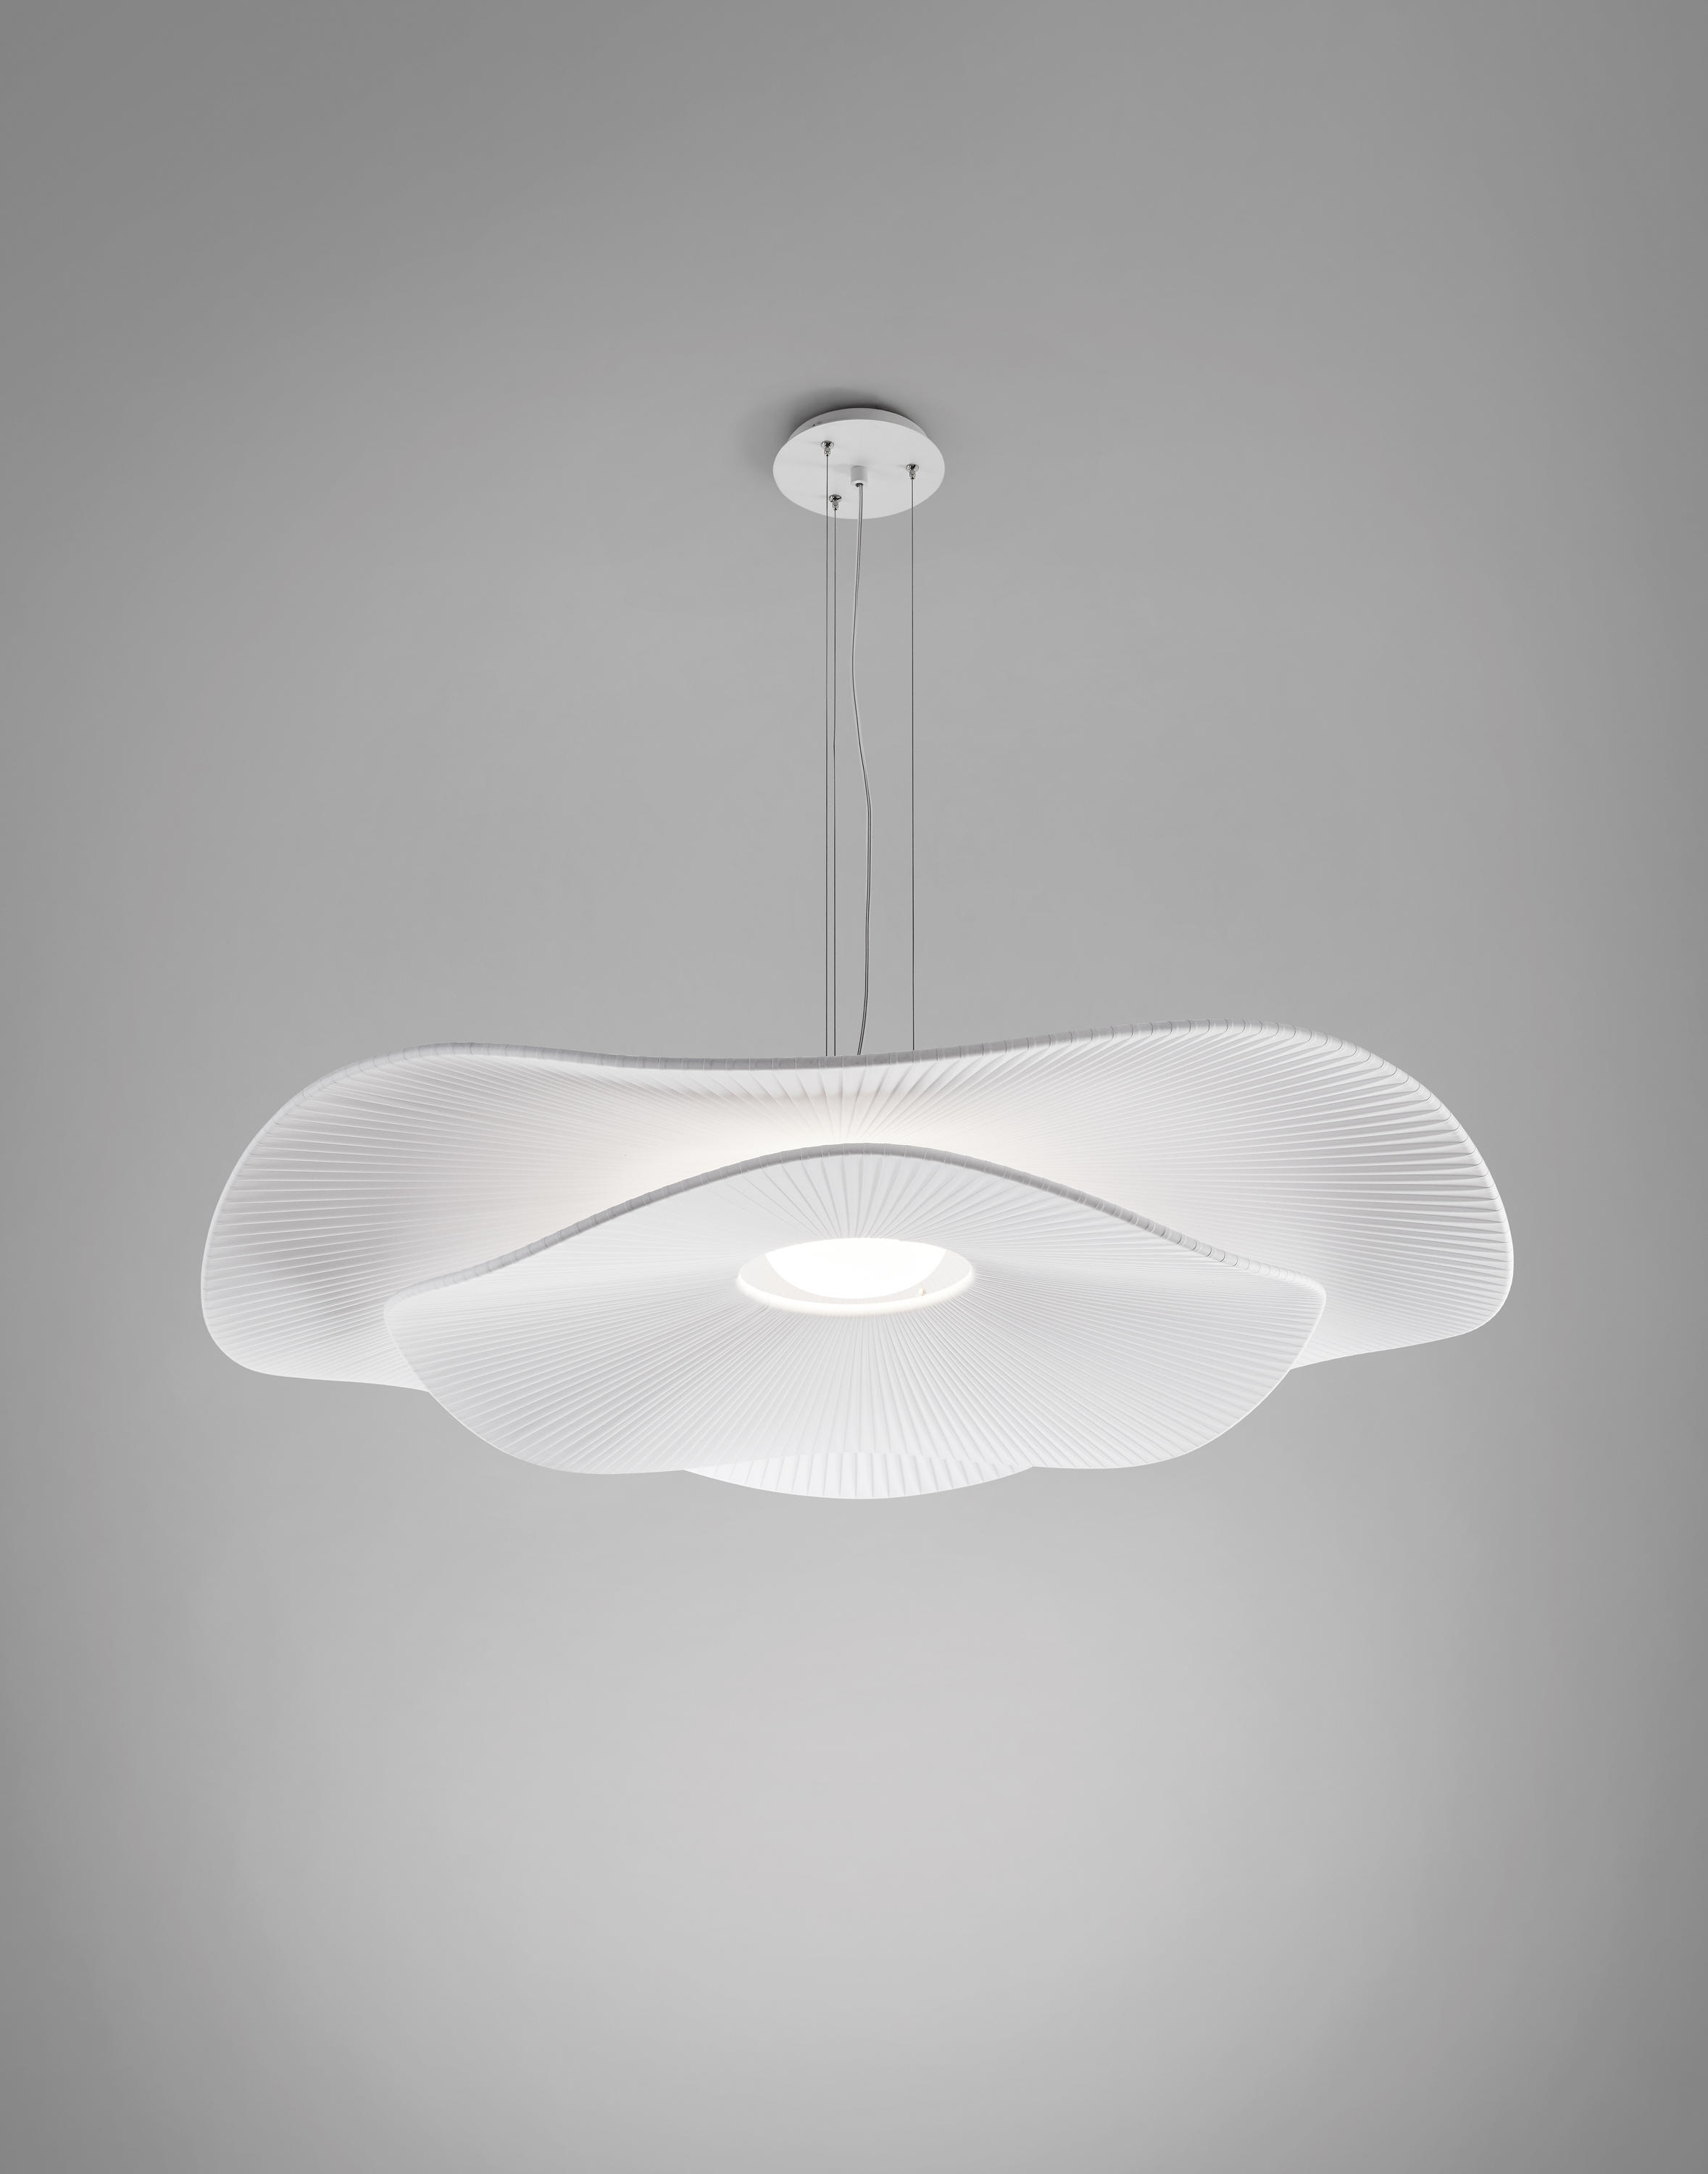 Mediterr 192 Nia S 105 03 Suspended Lights From Bover